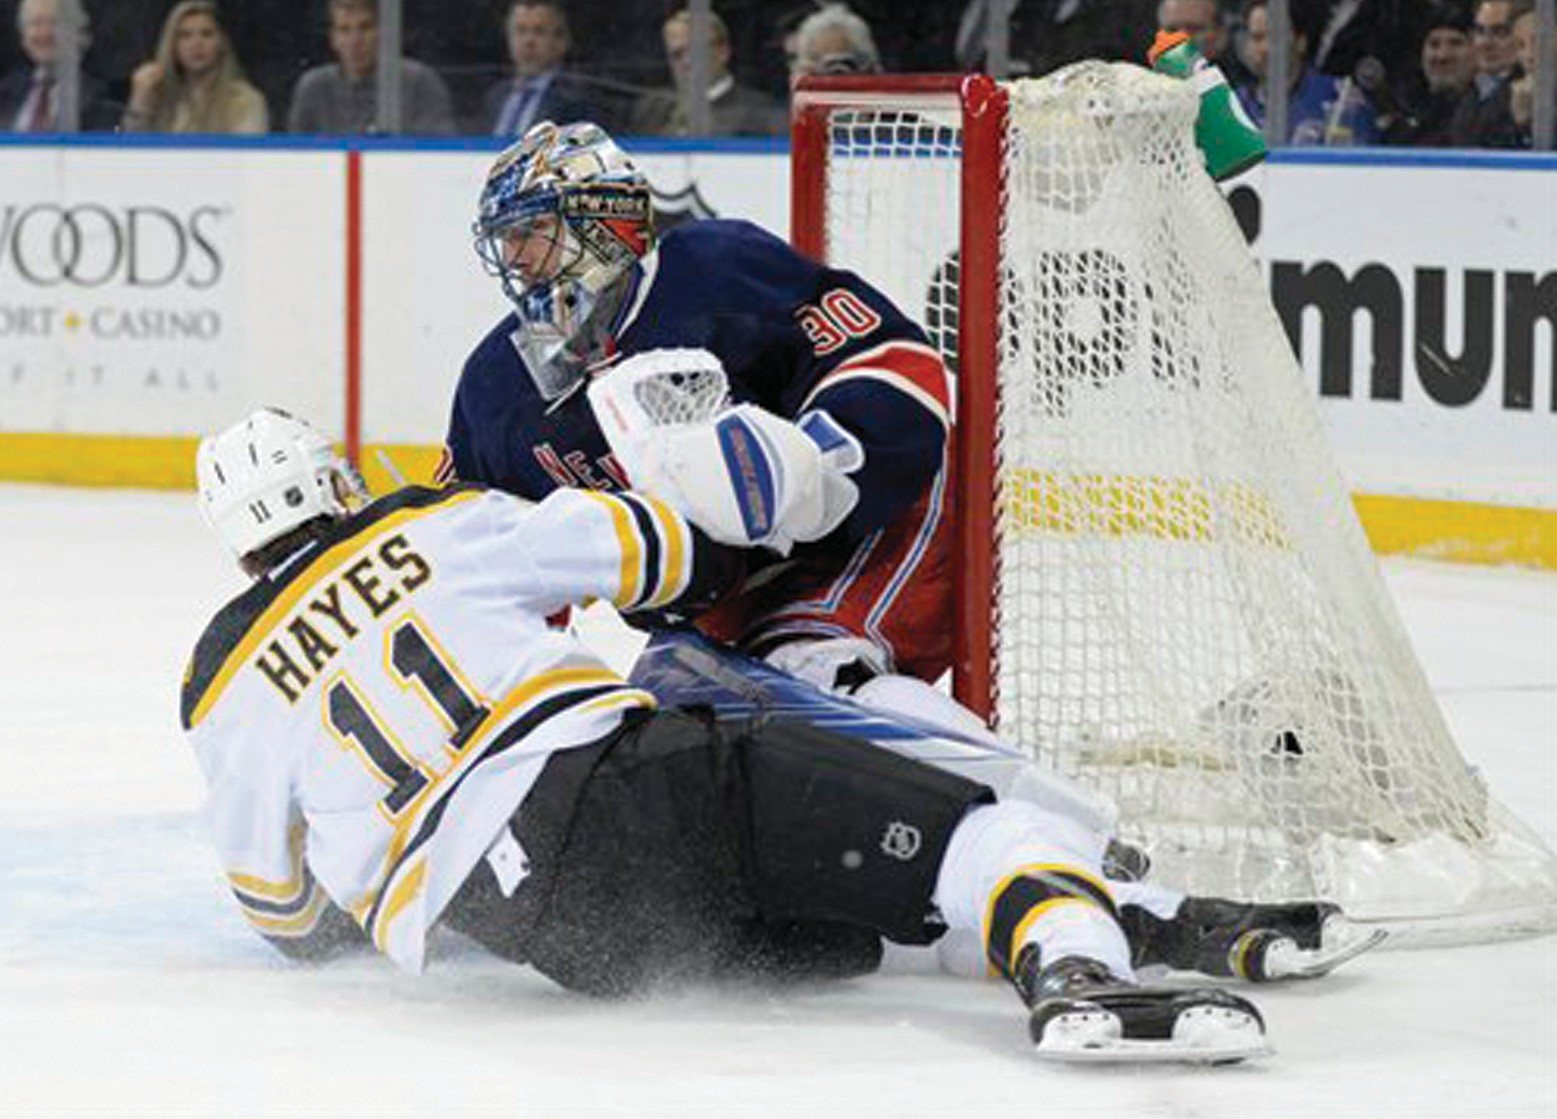 Boston Bruins' Jimmy Hayes (11) slides into New York Rangers goaltender Henrik Lundqvist (30), of Sweden, during the first period Monday, at Madison Square Garden in New York.